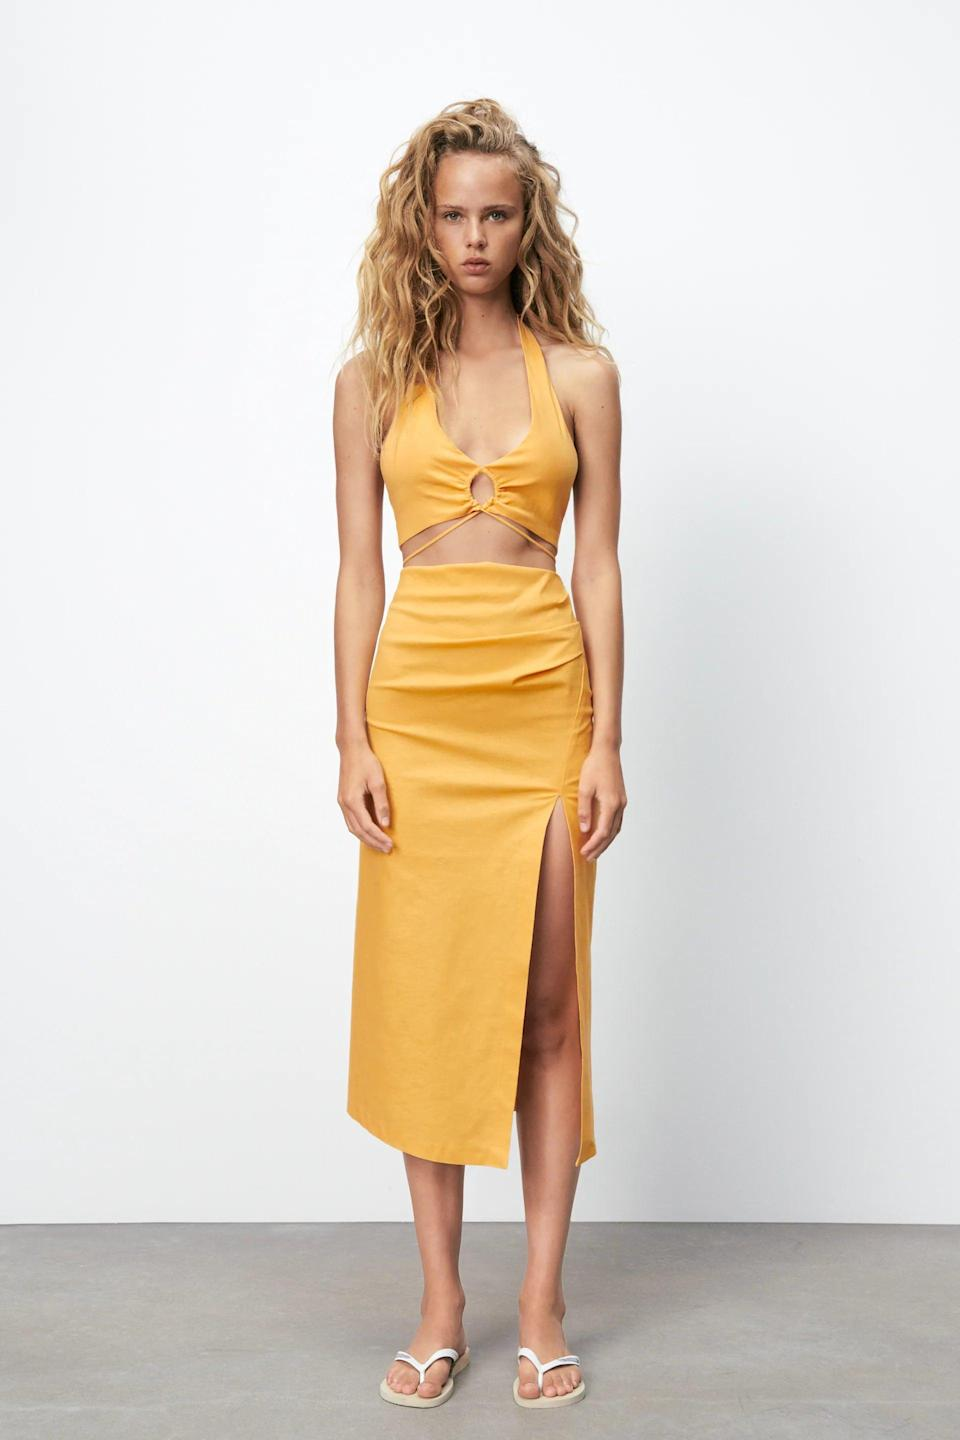 <p>When we think of summer, we think of fun colors and sexy details. Basically, we think of this <span>Zara Linen Blend Crop Top</span> ($36) and <span>Linen Blend Skirt With Ruching</span> ($40).</p>